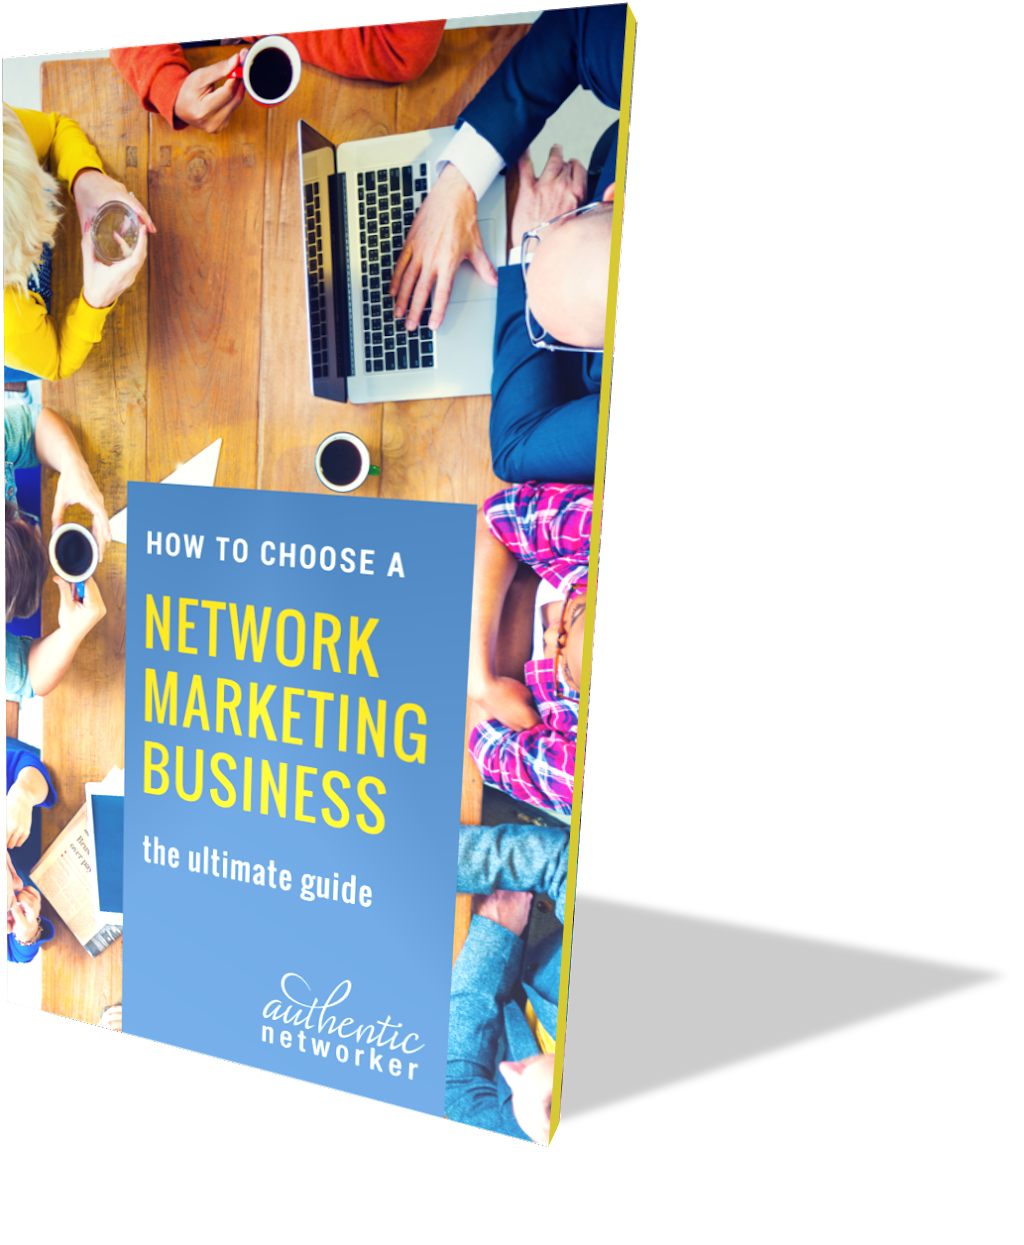 Ebook: How to Choose a Network Marketing Business